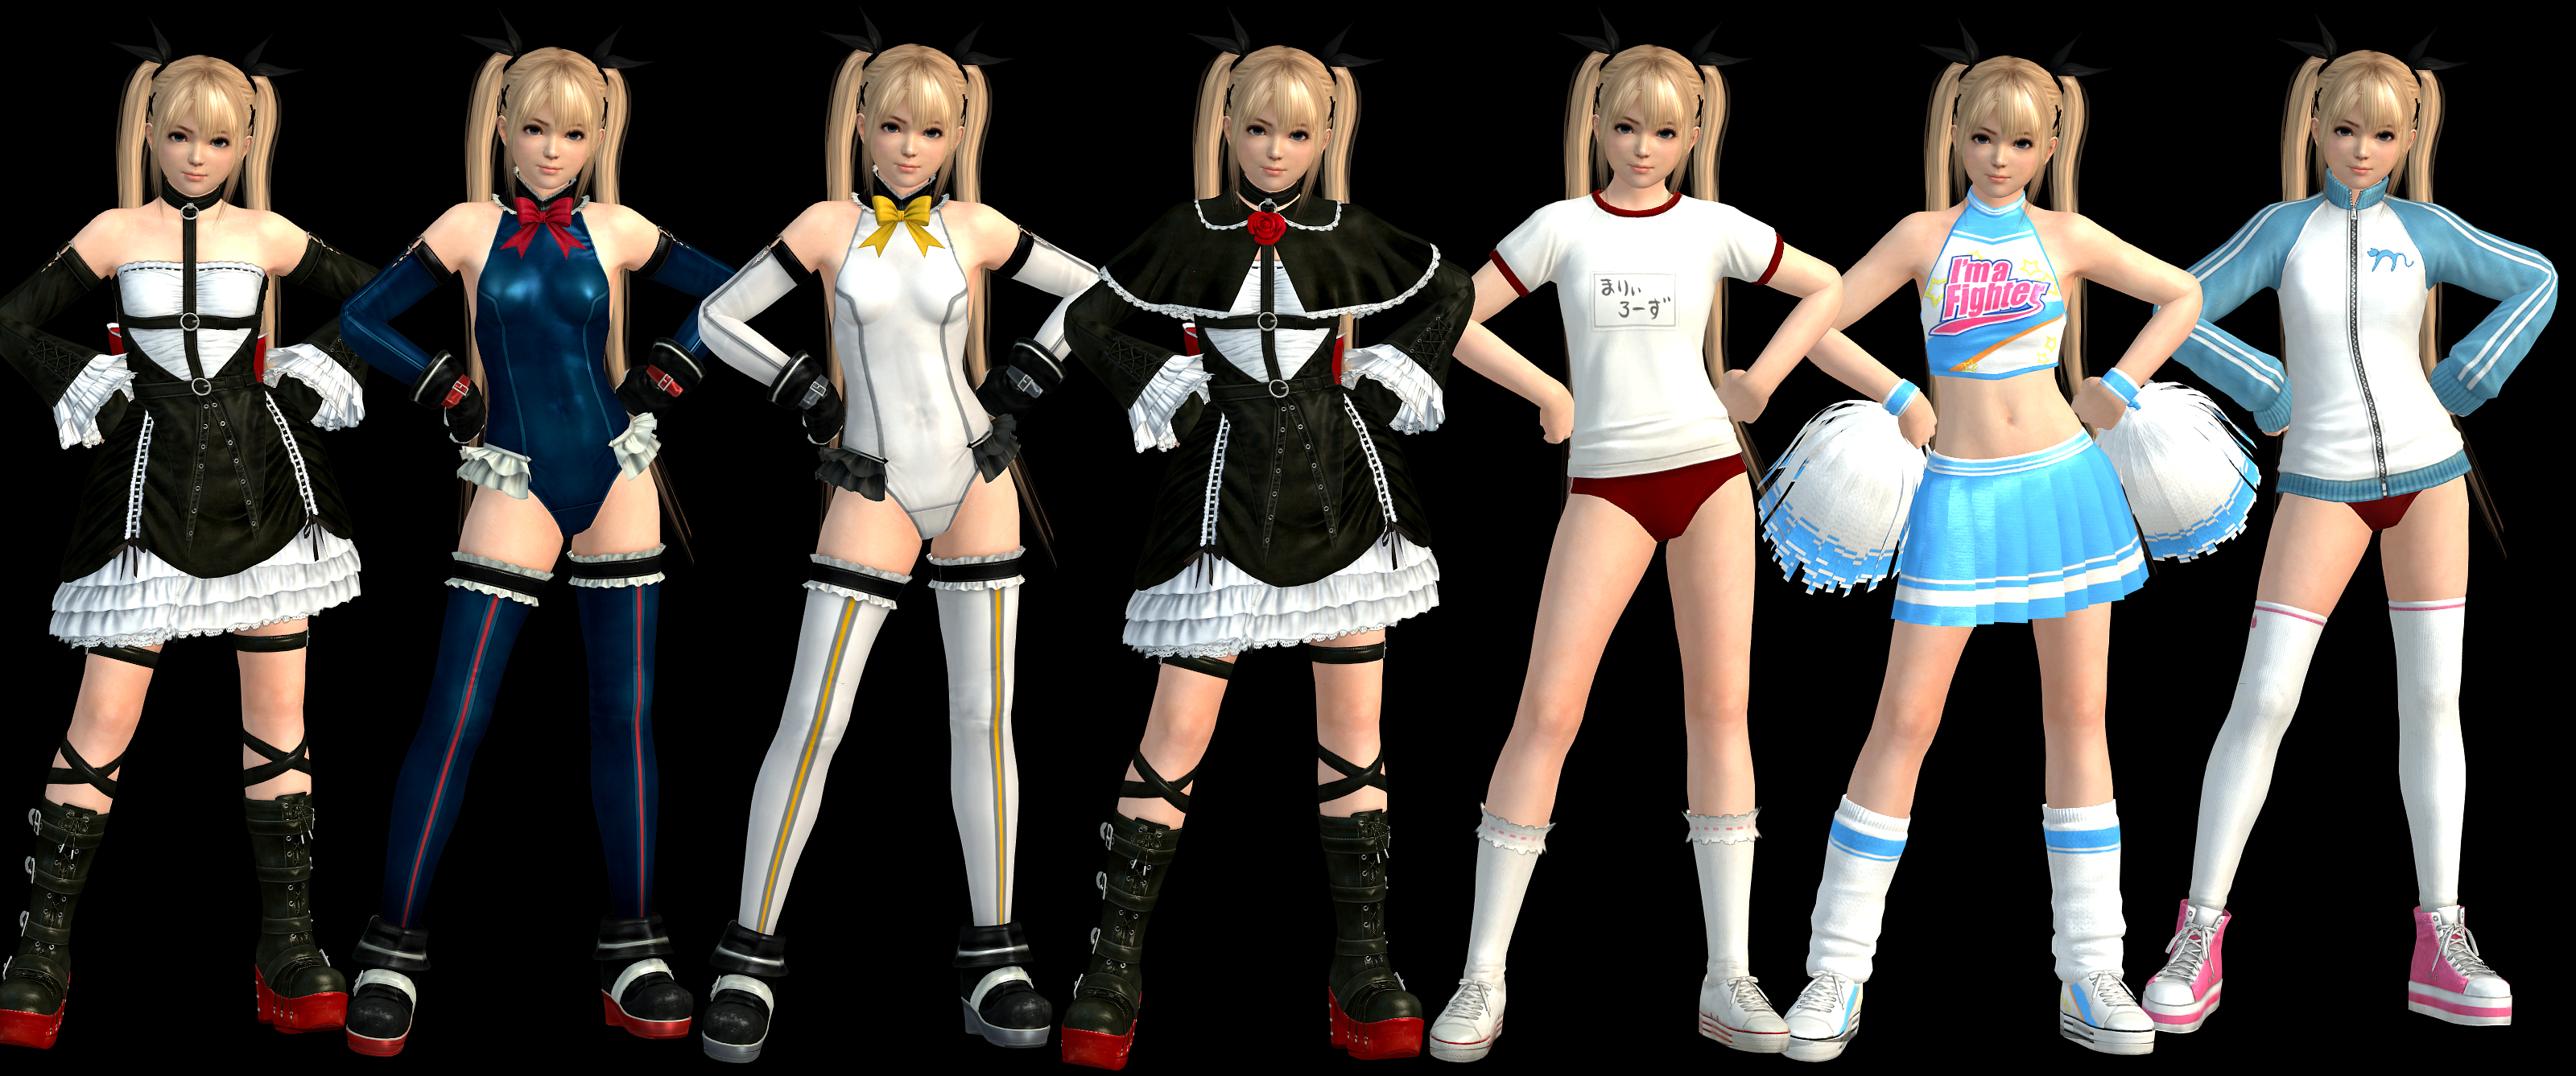 Marie Rose XNALara Costumes by Chrissy-Tee on DeviantArt